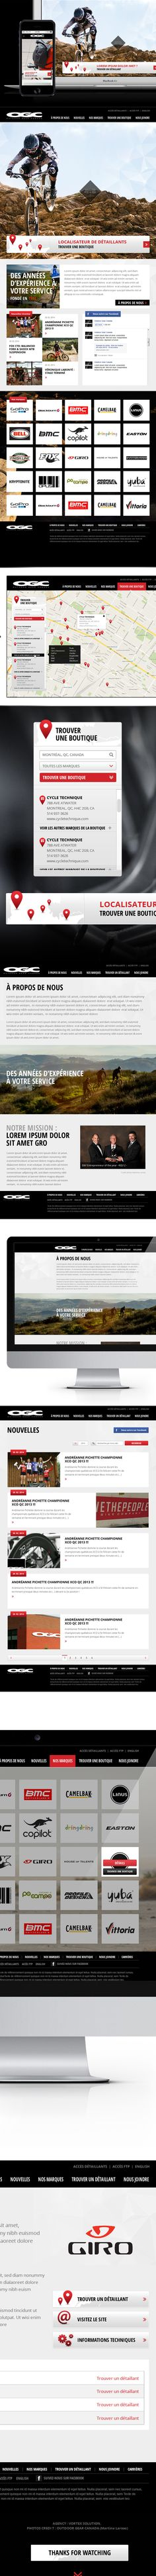 Outdoor Gear company website-biking